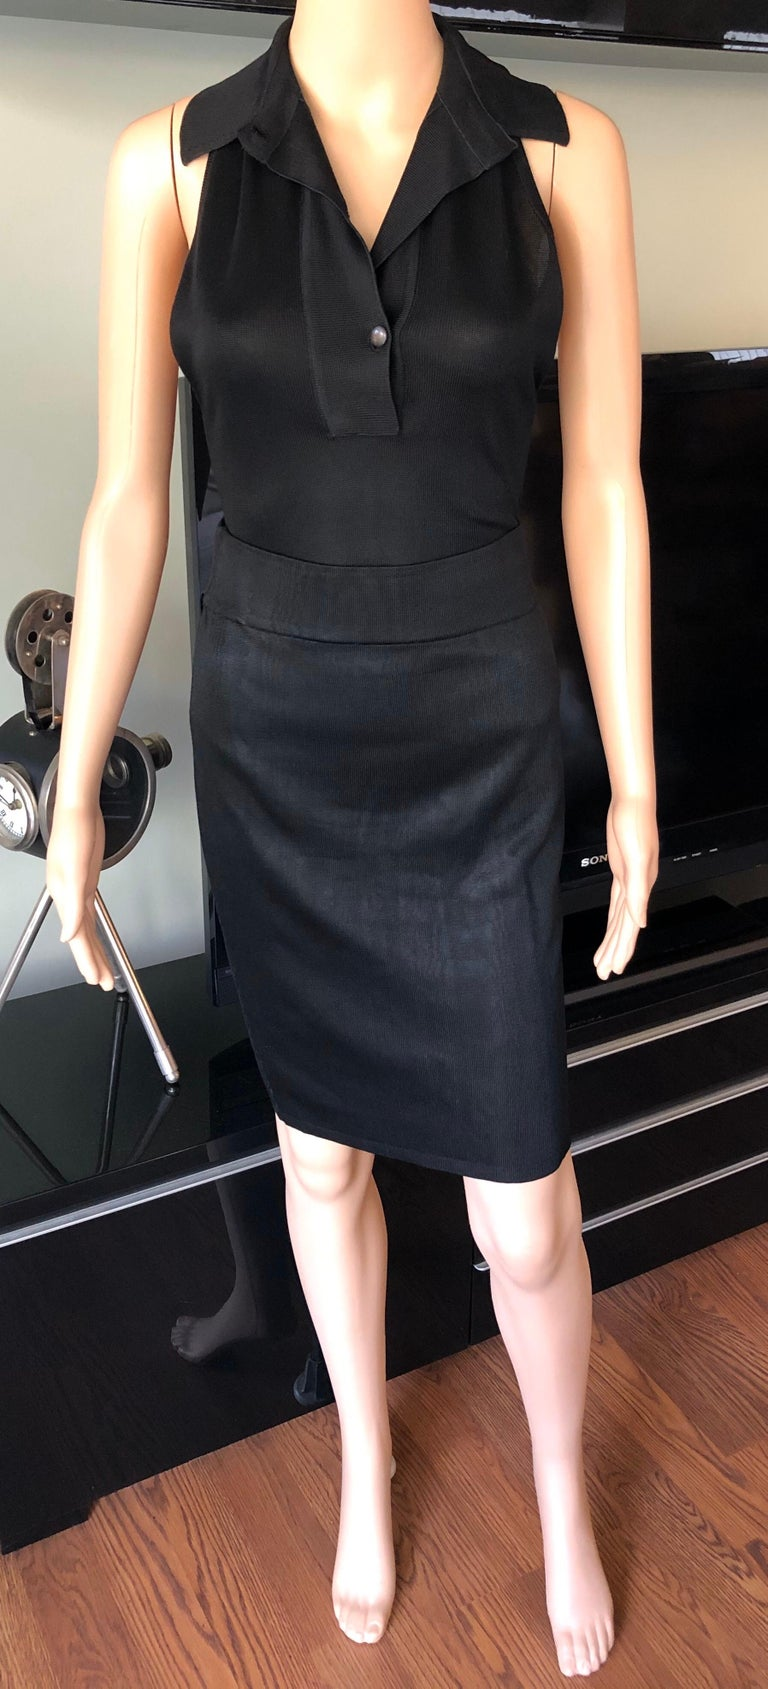 Azzedine Alaia Vintage Black Bodysuit and Skirt 2 Piece Set In Good Condition For Sale In Totowa, NJ